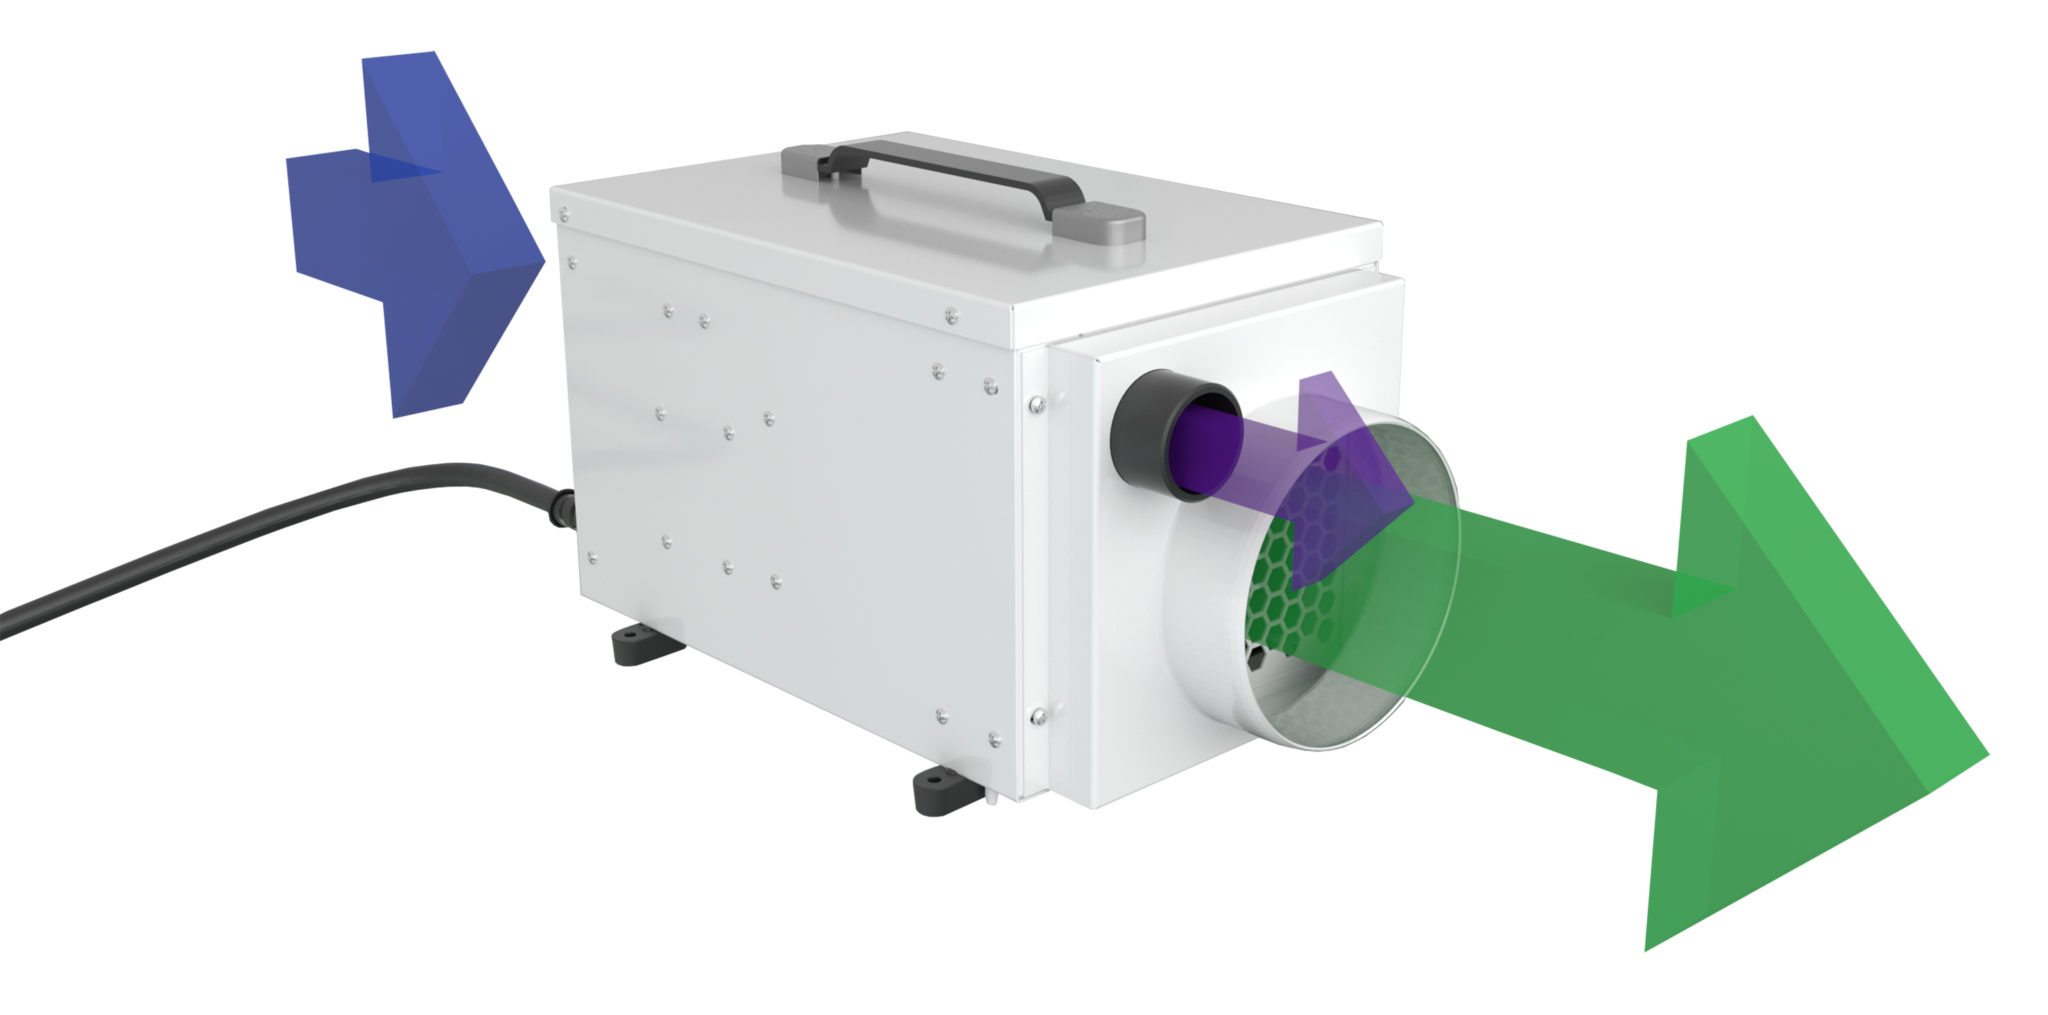 dh1200 air flow dehumidifiers by Ecor Pro